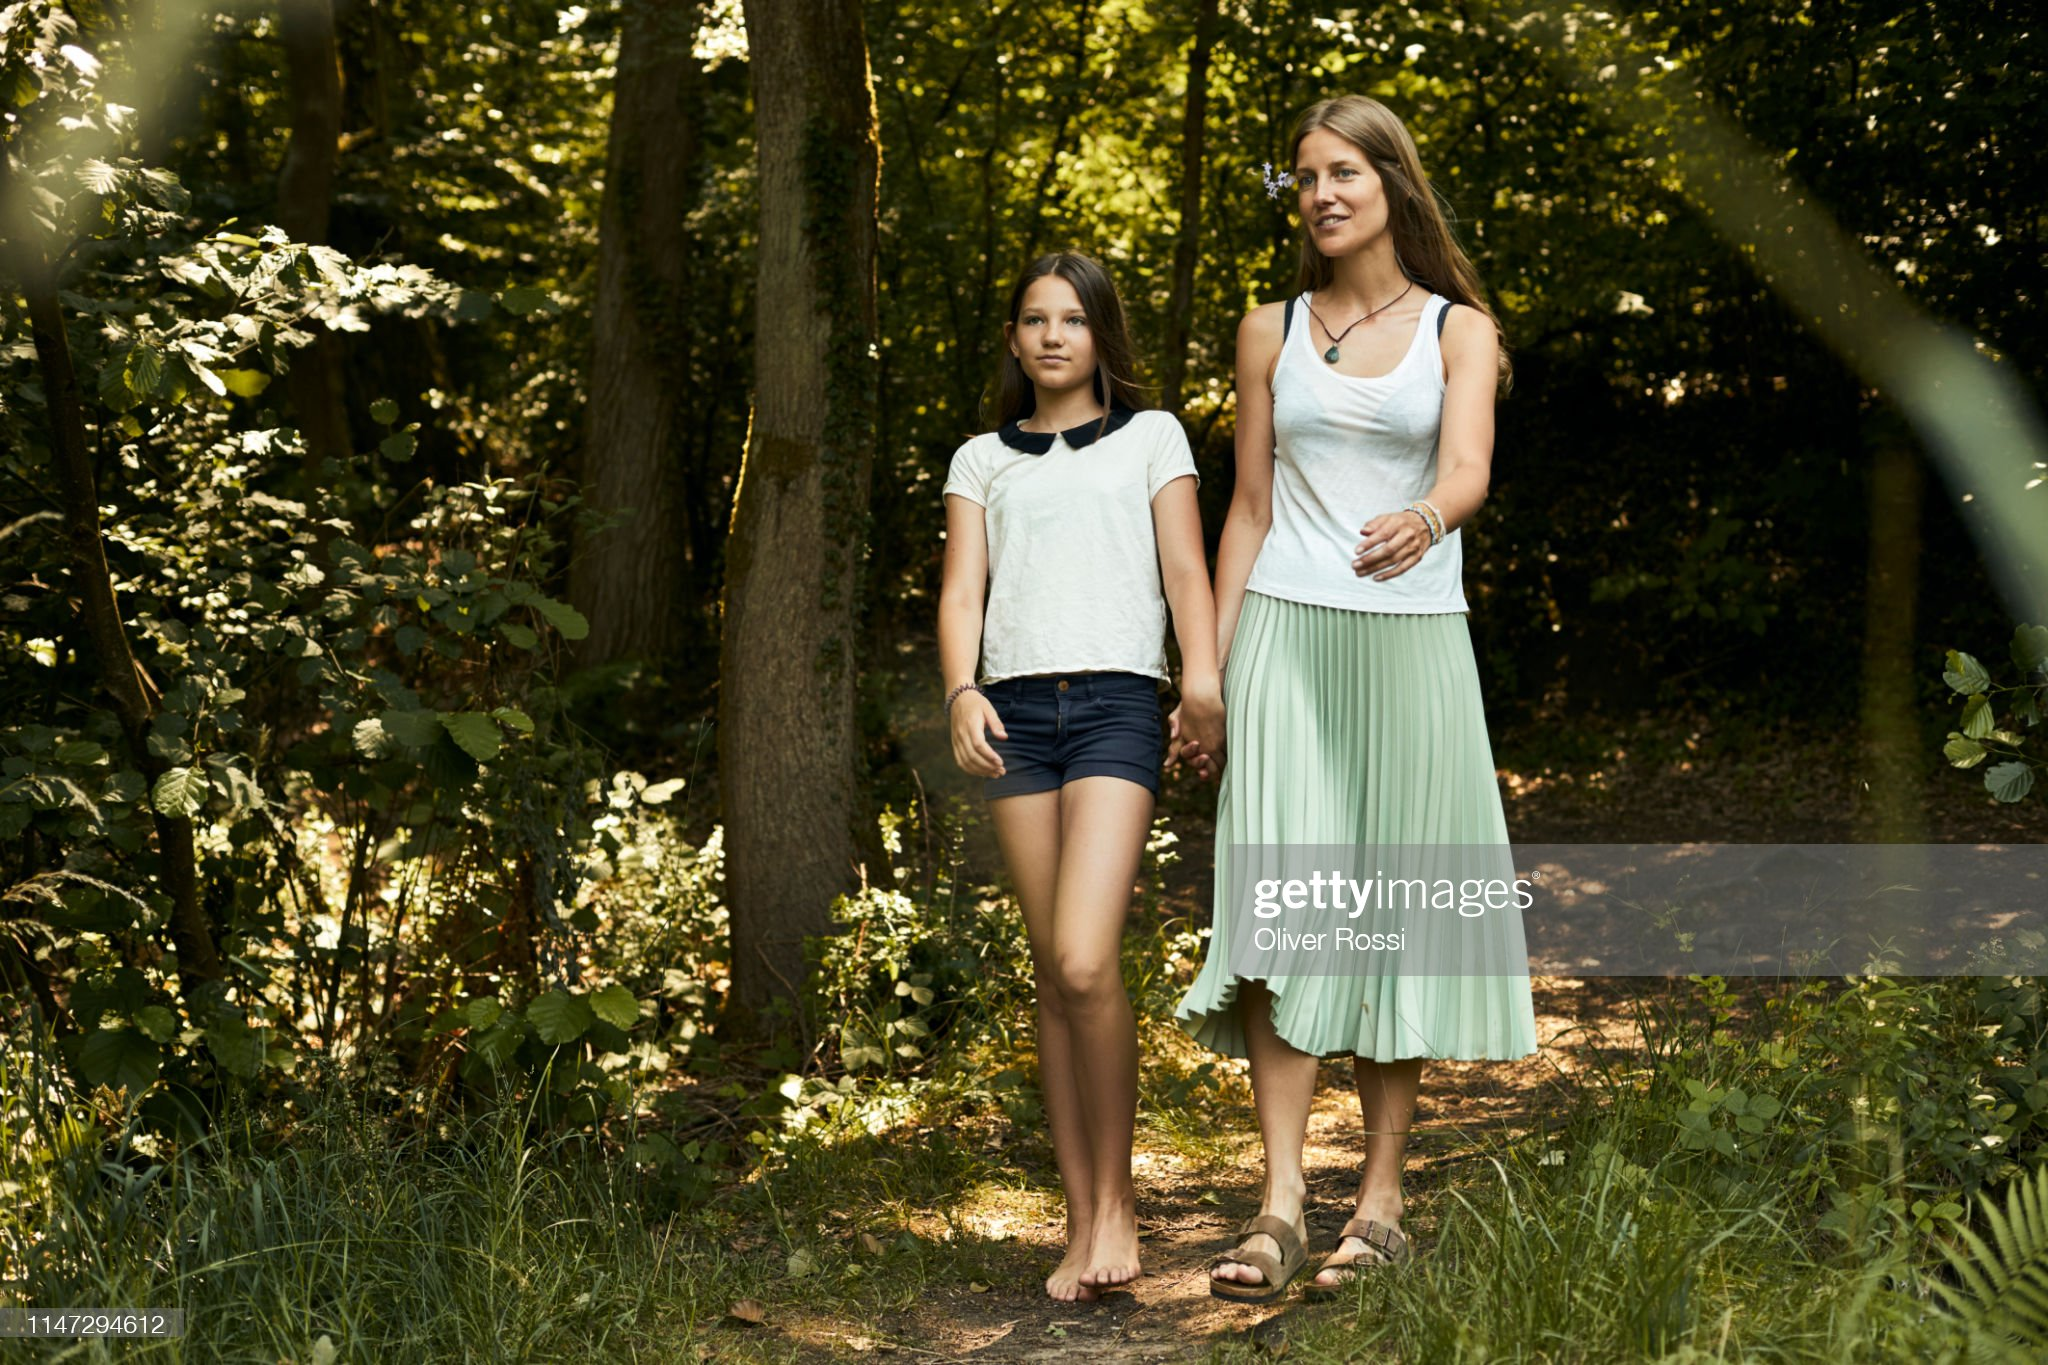 https://media.gettyimages.com/photos/mother-and-daughter-walking-hand-in-hand-on-a-forest-path-picture-id1147294612?s=2048x2048